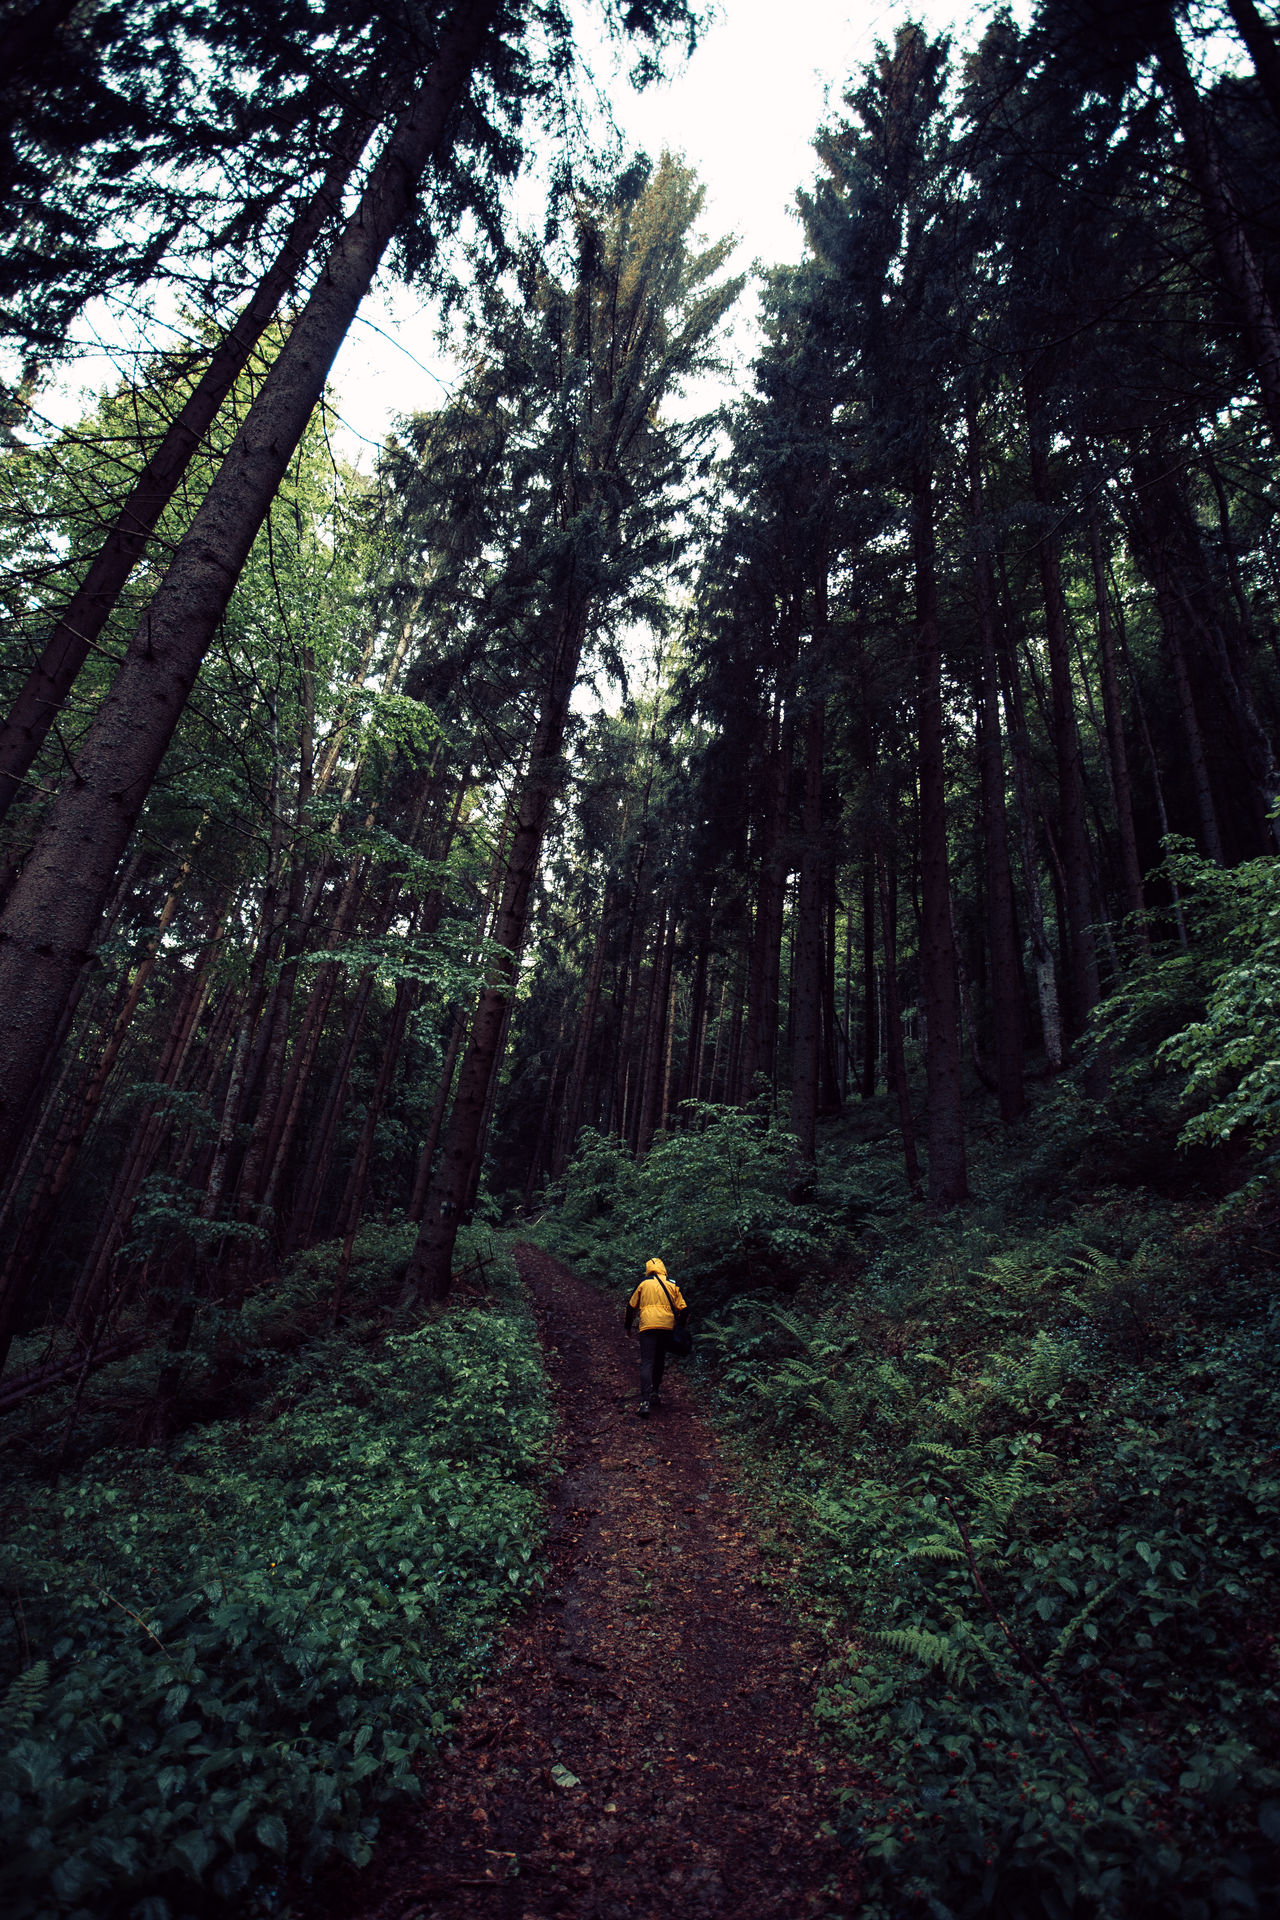 Adventure Adventures Day Exploring Forest Forest Photography Full Length Growth Hiking Landscape Nature Nature Nature Photography Nature_collection Naturelovers One Person Outdoors People Real People Trail Tranquility Tree Tree Tree Trunk Walking